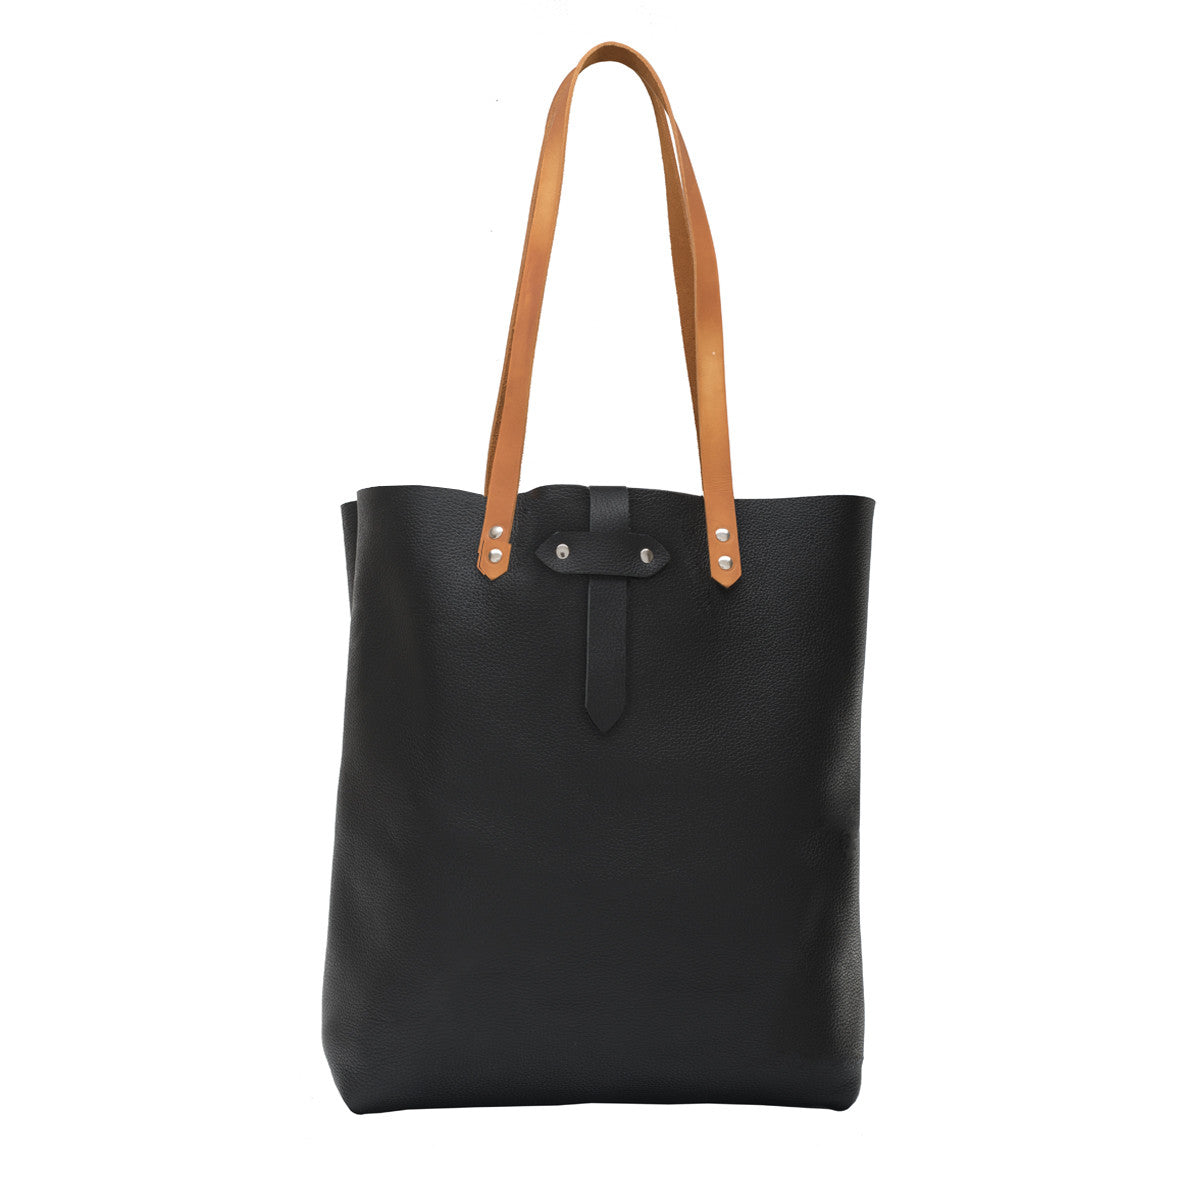 Black Leather Tote, Leather Bags, Camille Tote